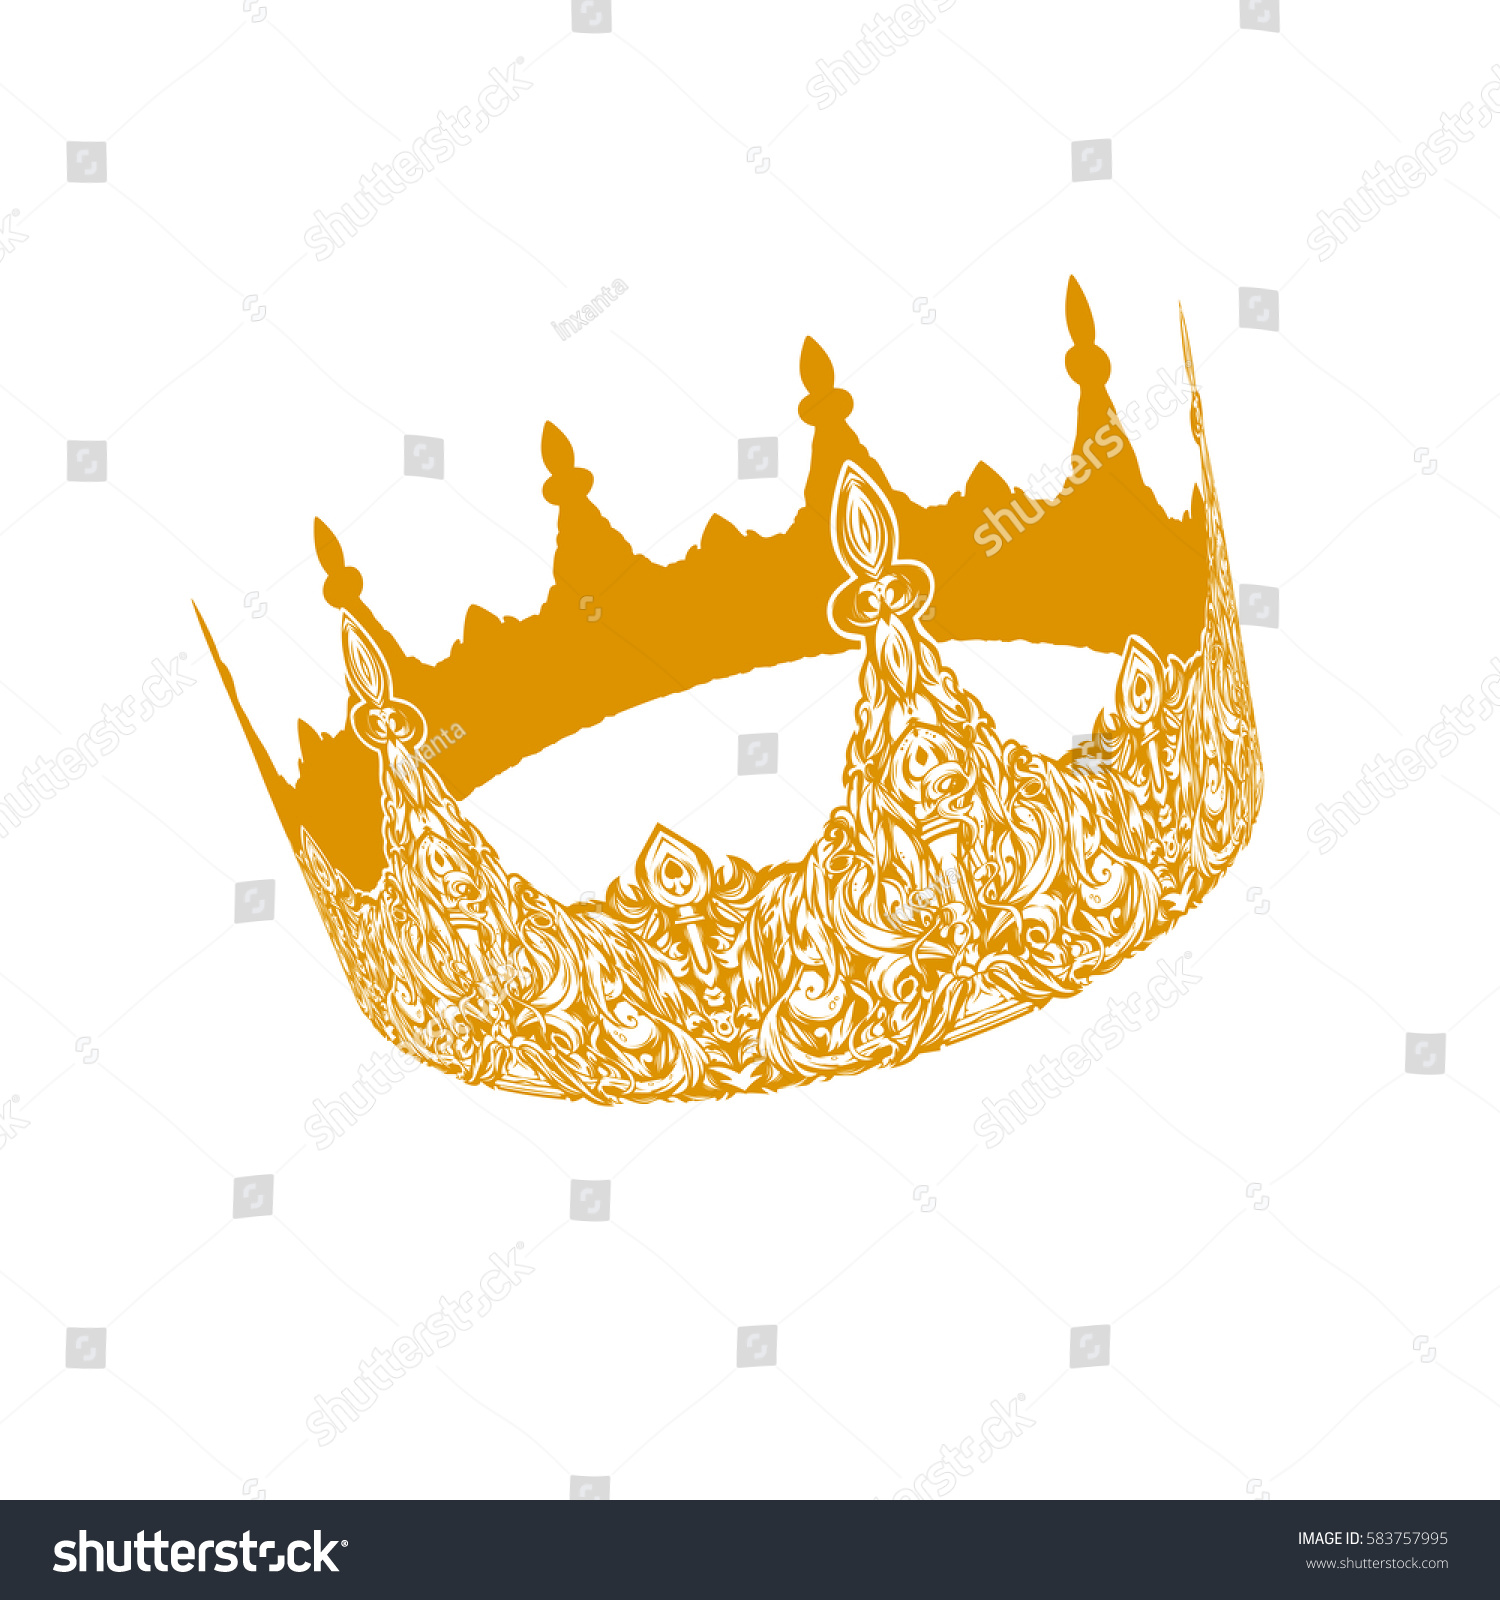 Beautiful Gold Vintage Crown Patterned Old Stock Vector 583757995